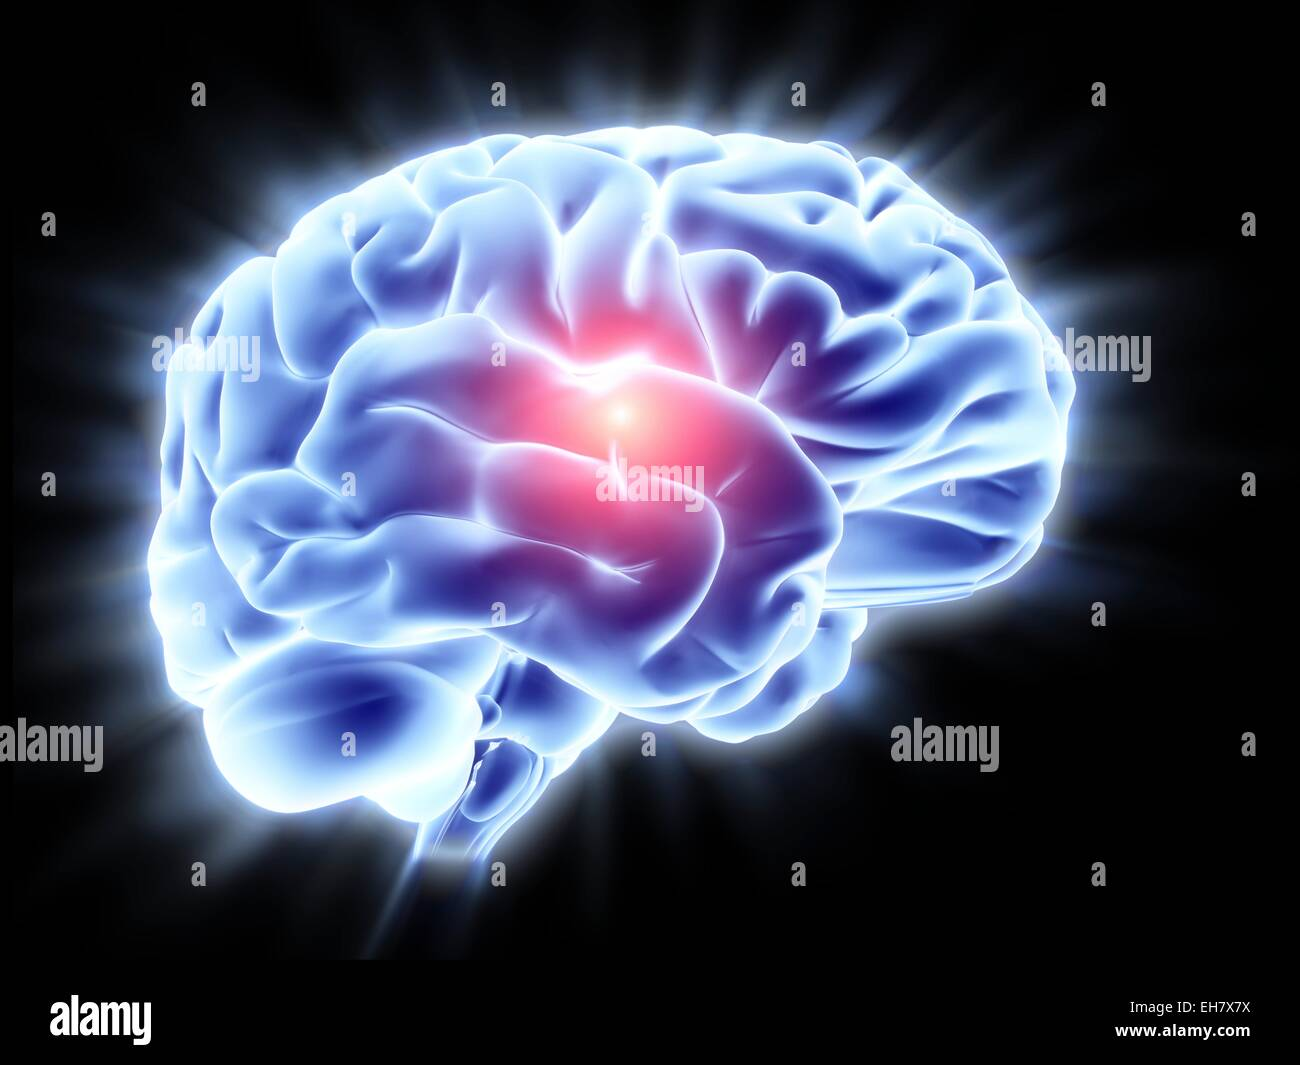 Human brain, artwork - Stock Image